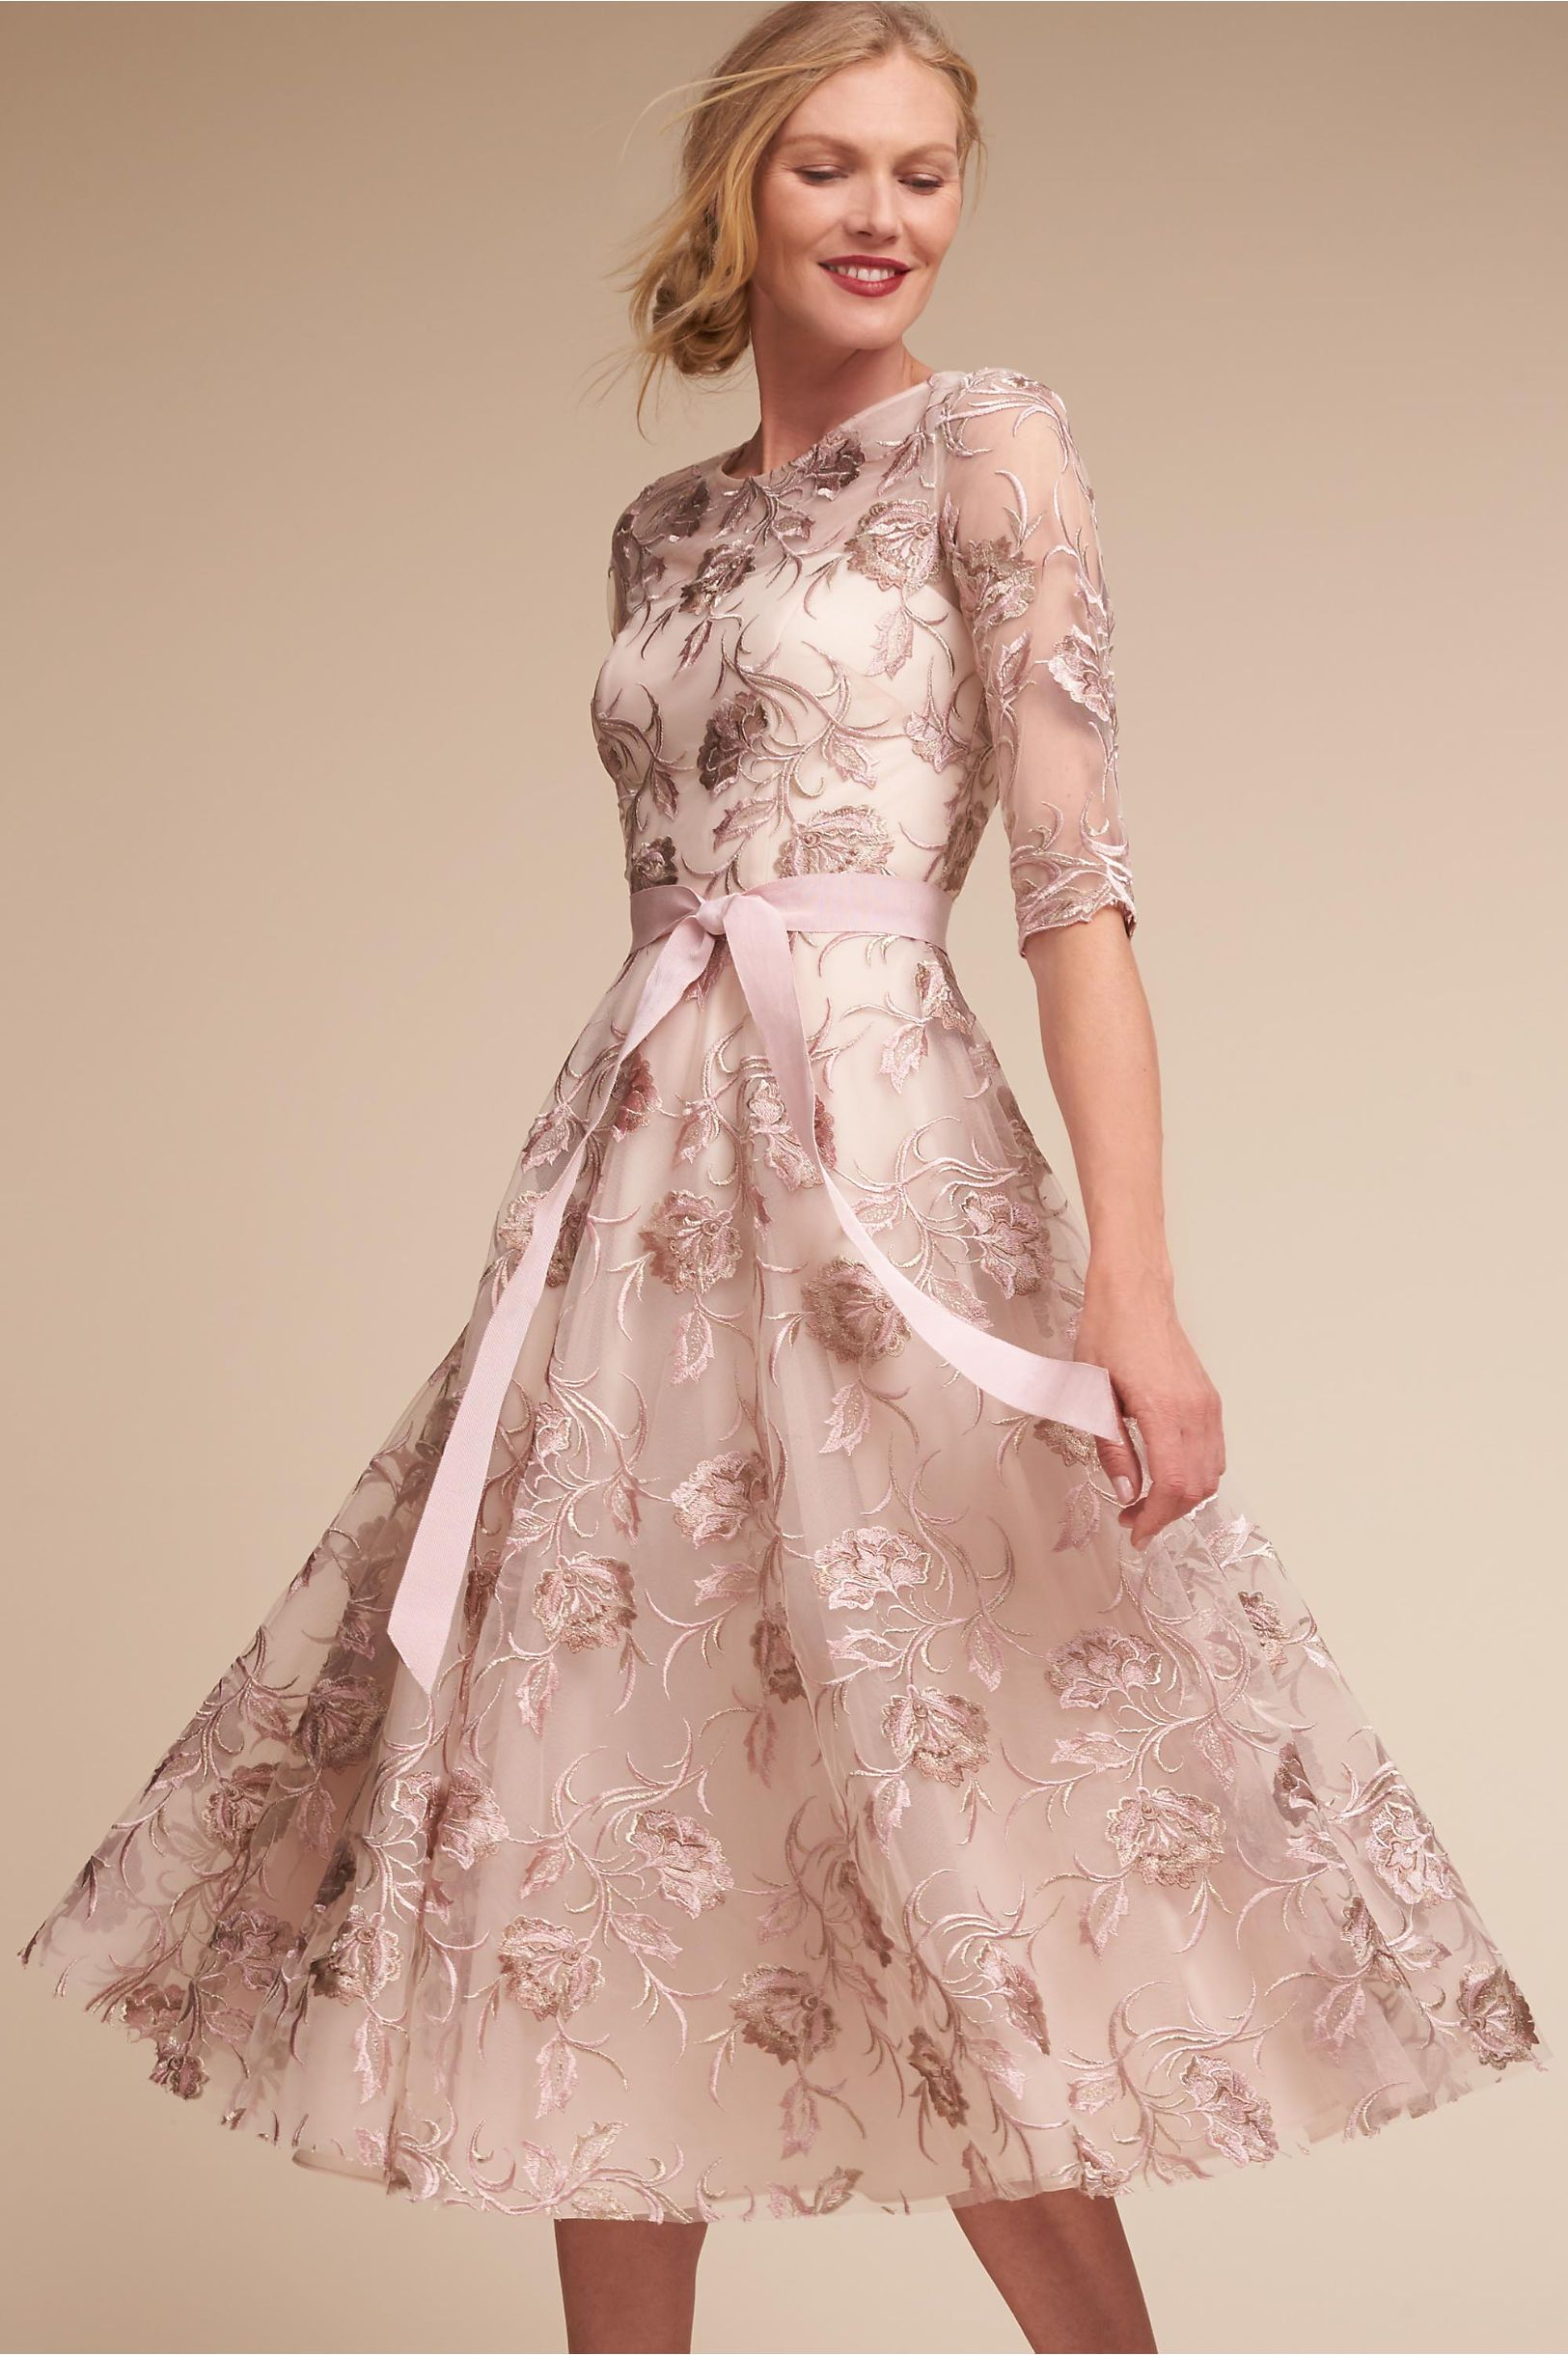 94b6e8bd7d720 BHLDN s Linden Dress in Blush Multi